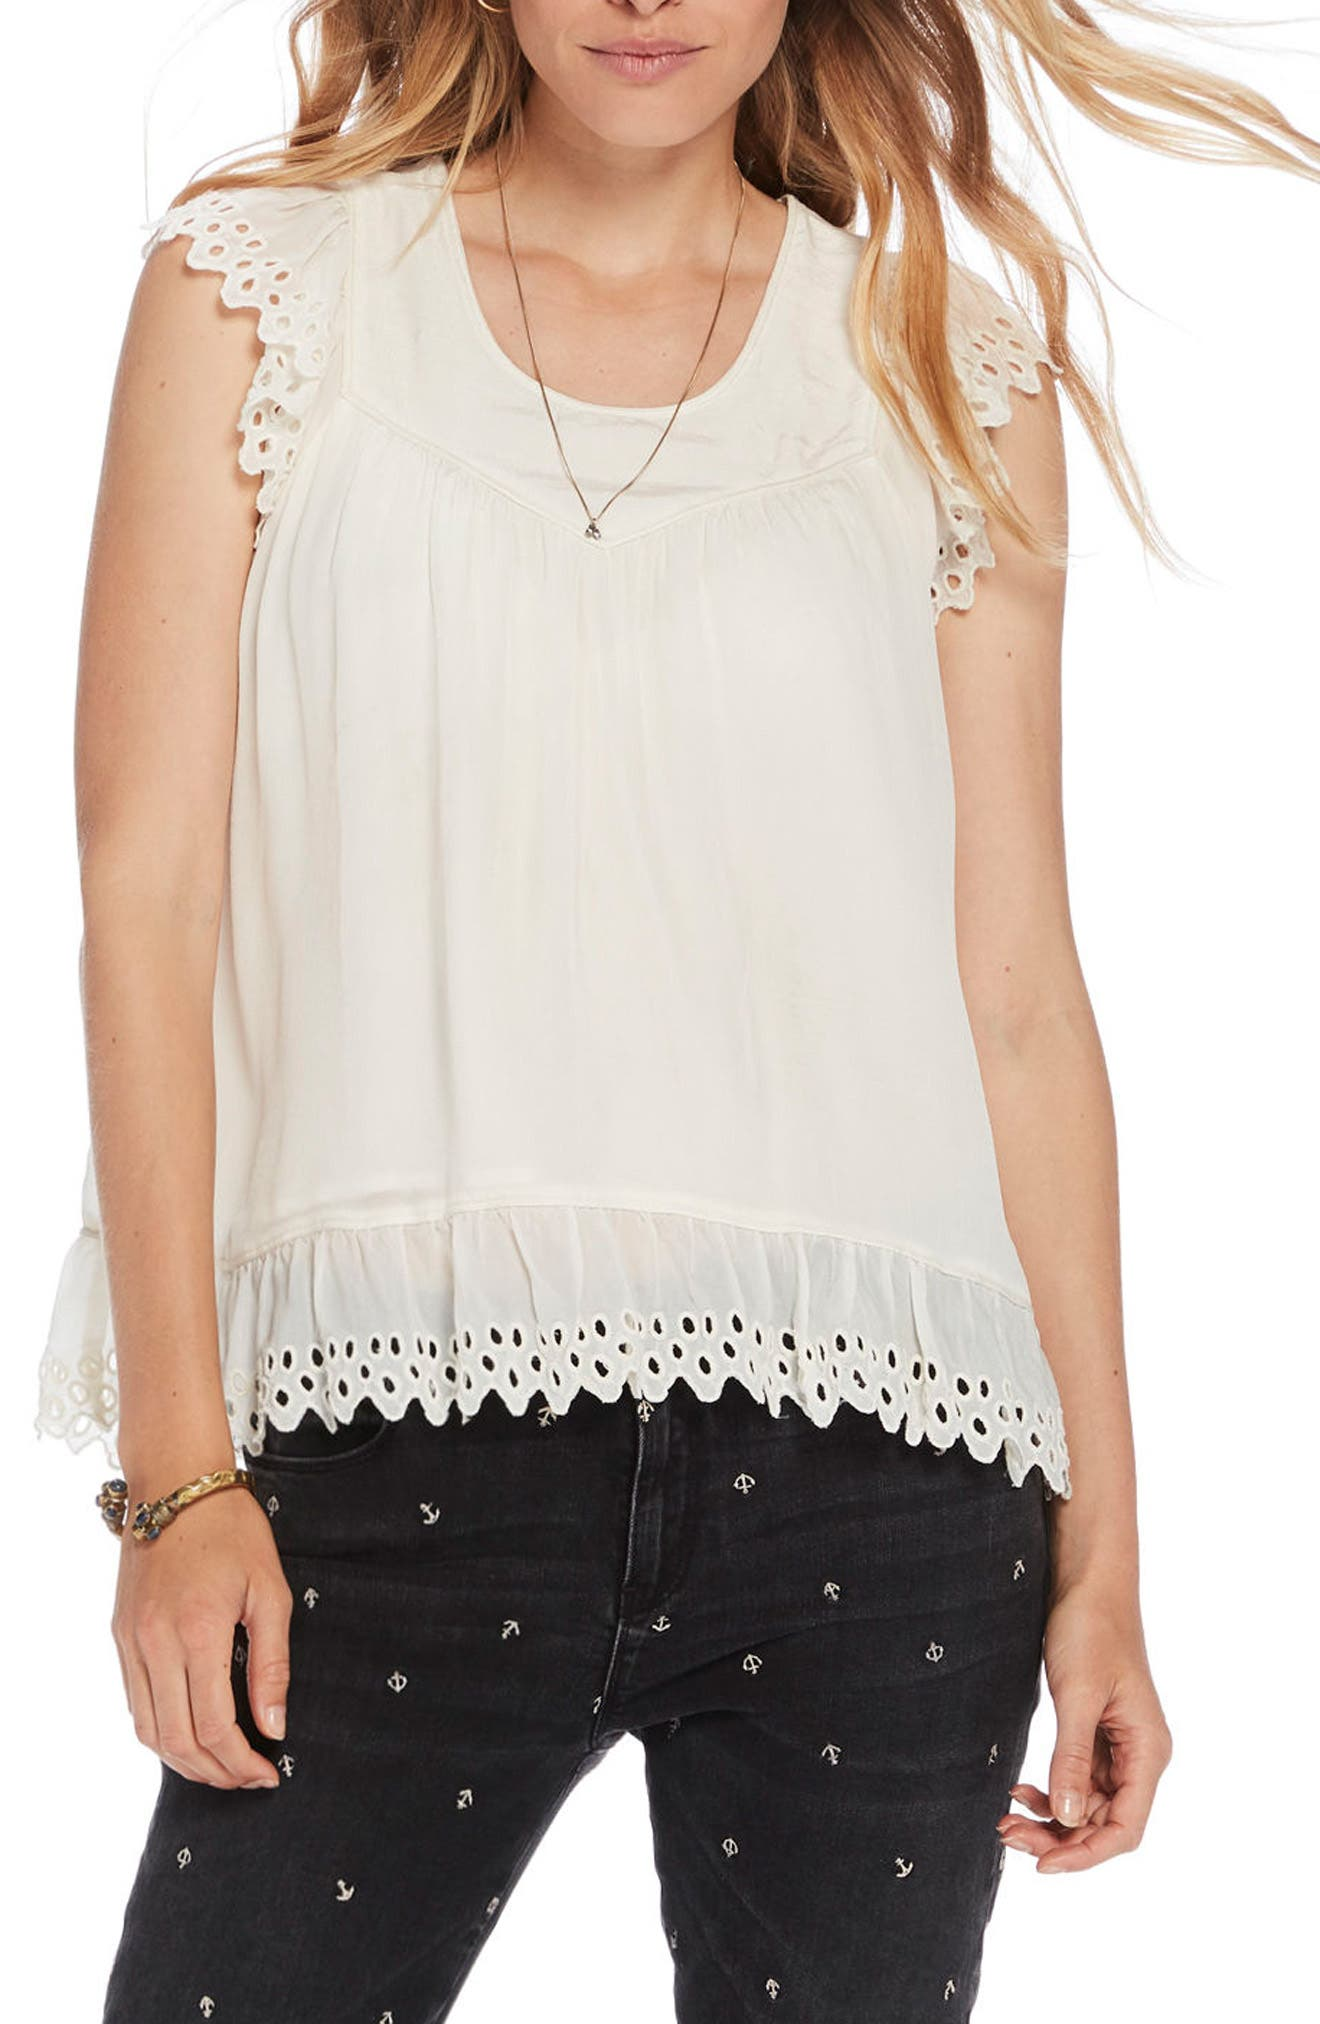 Scotch & Soda Eyelet Lace Top